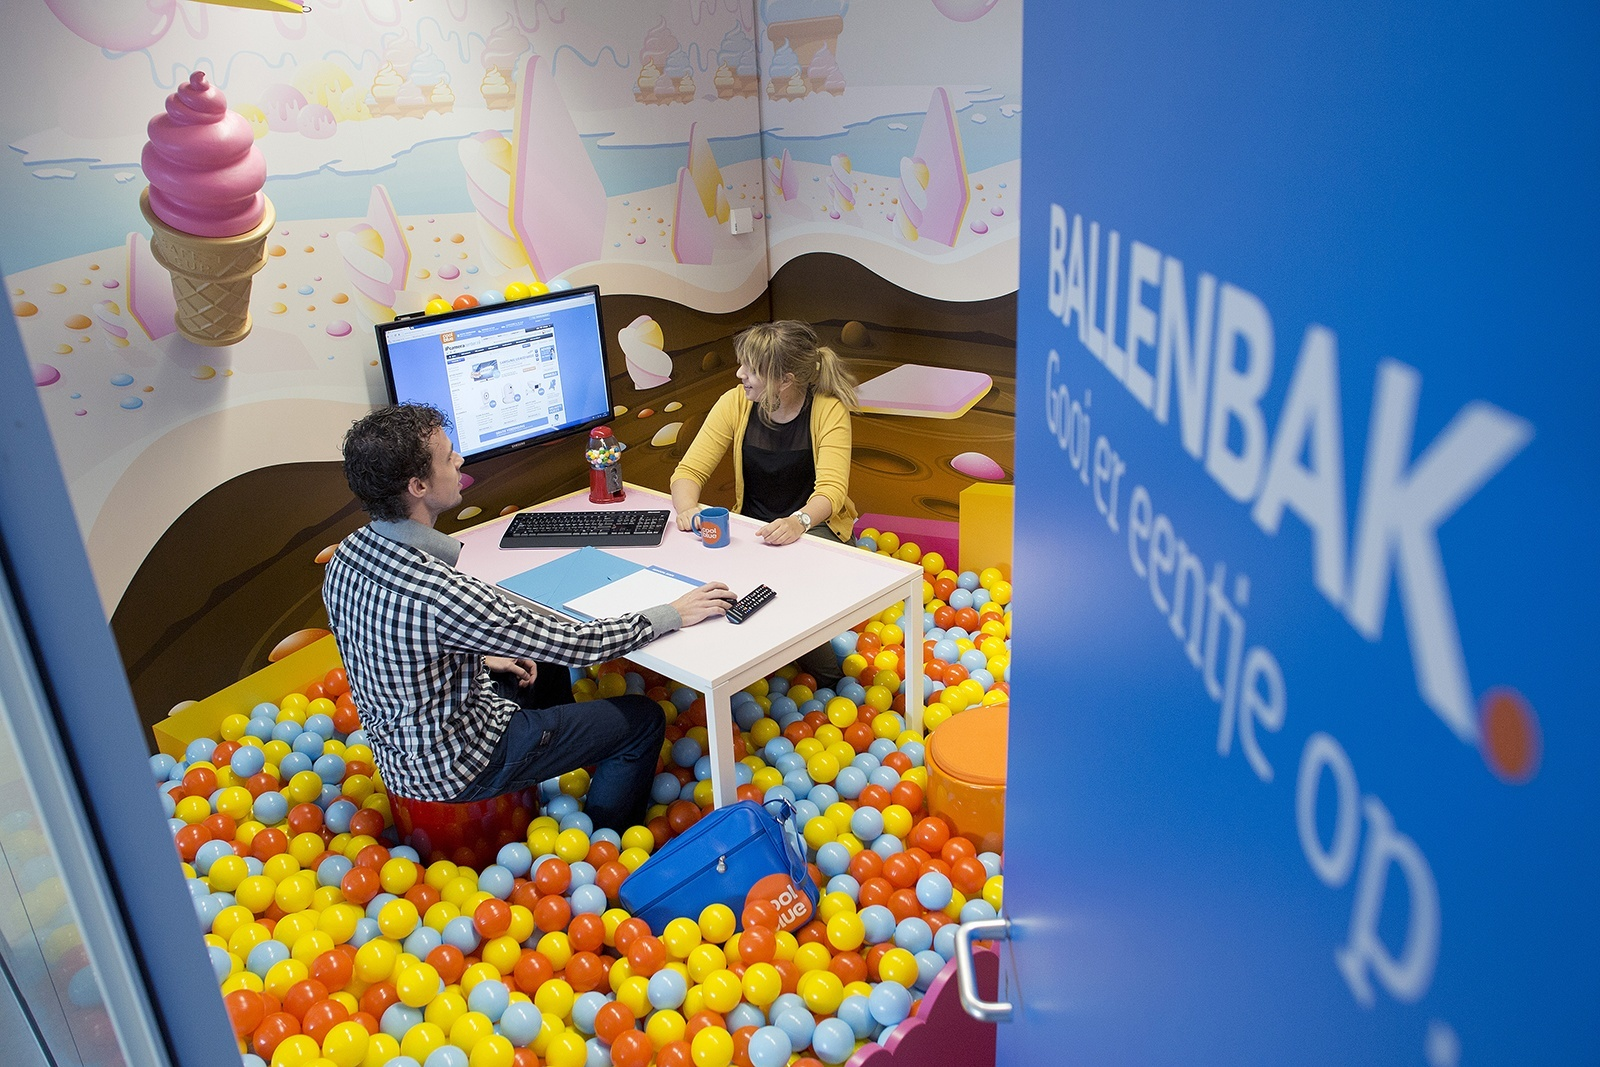 Coolblue_Ballpit